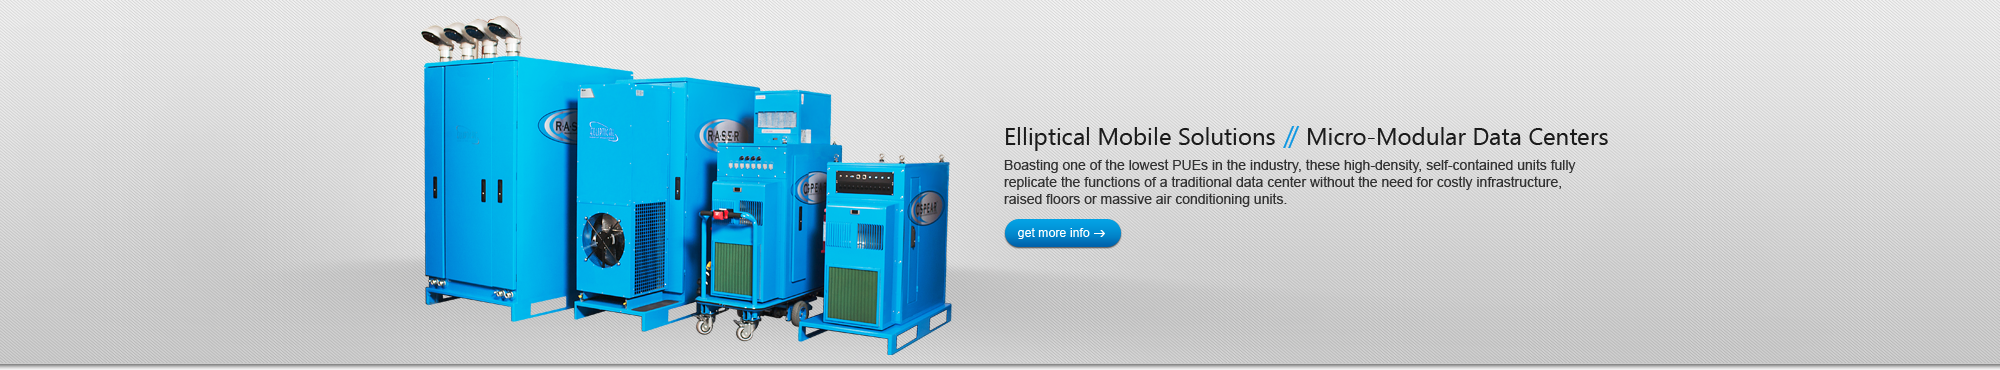 Elliptical Mobile Solutions